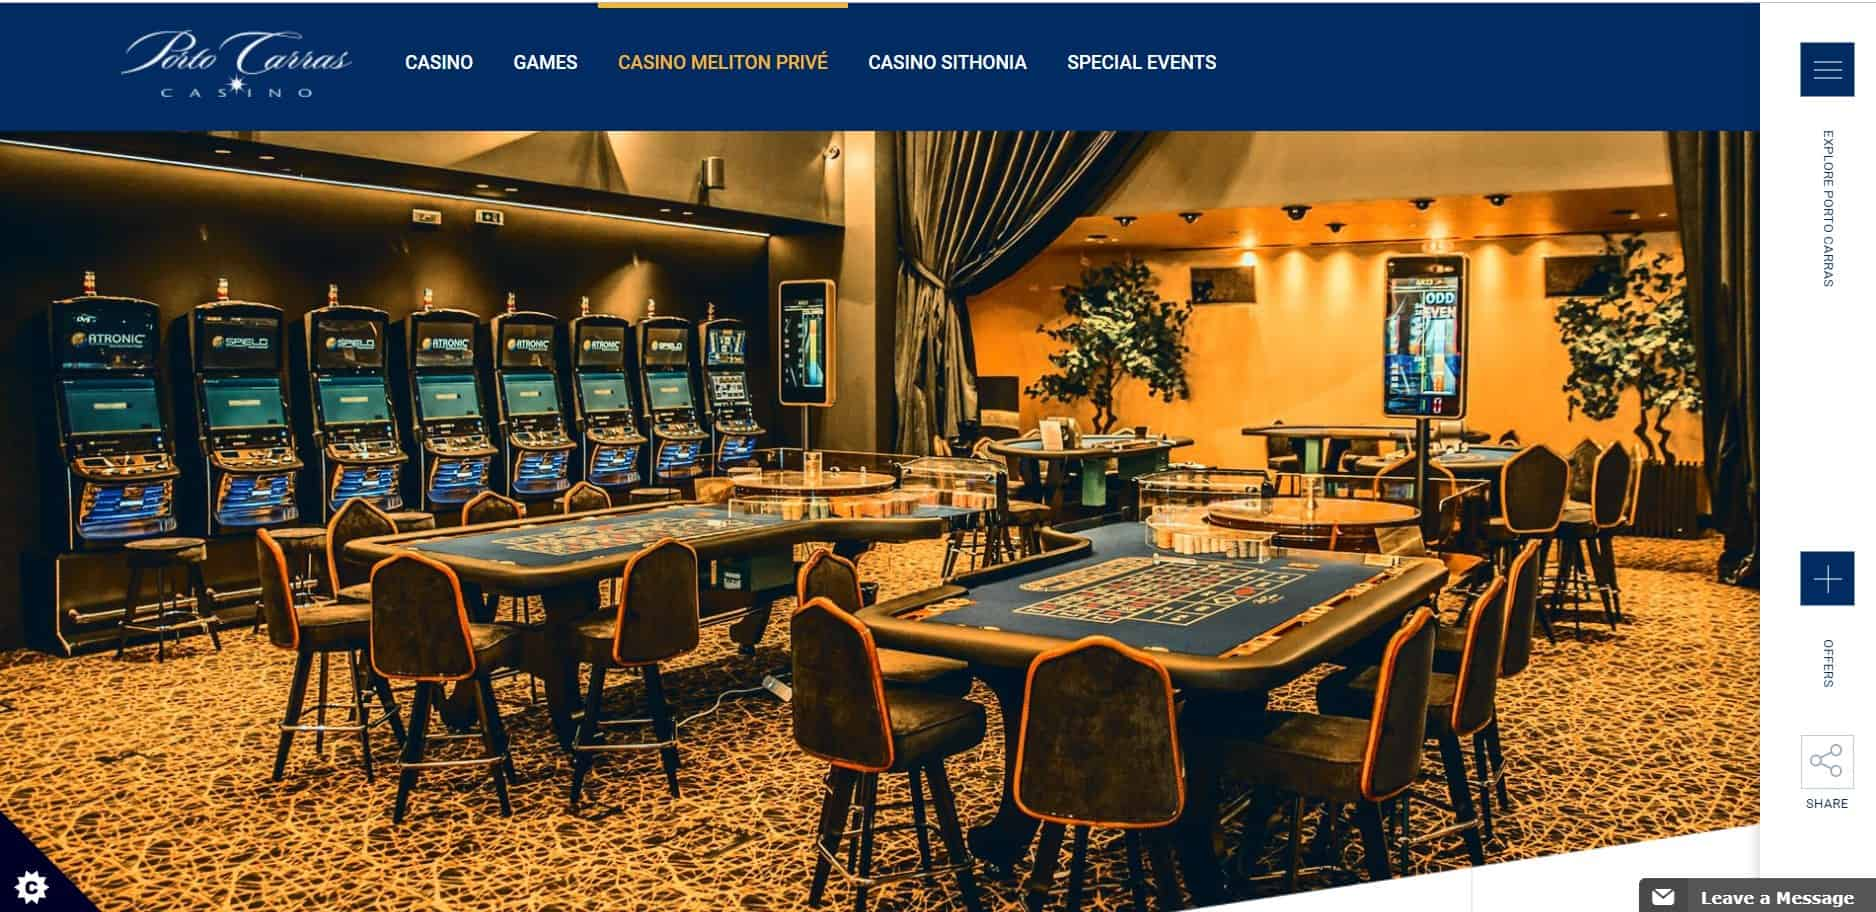 Porto Carras Casino Homepage